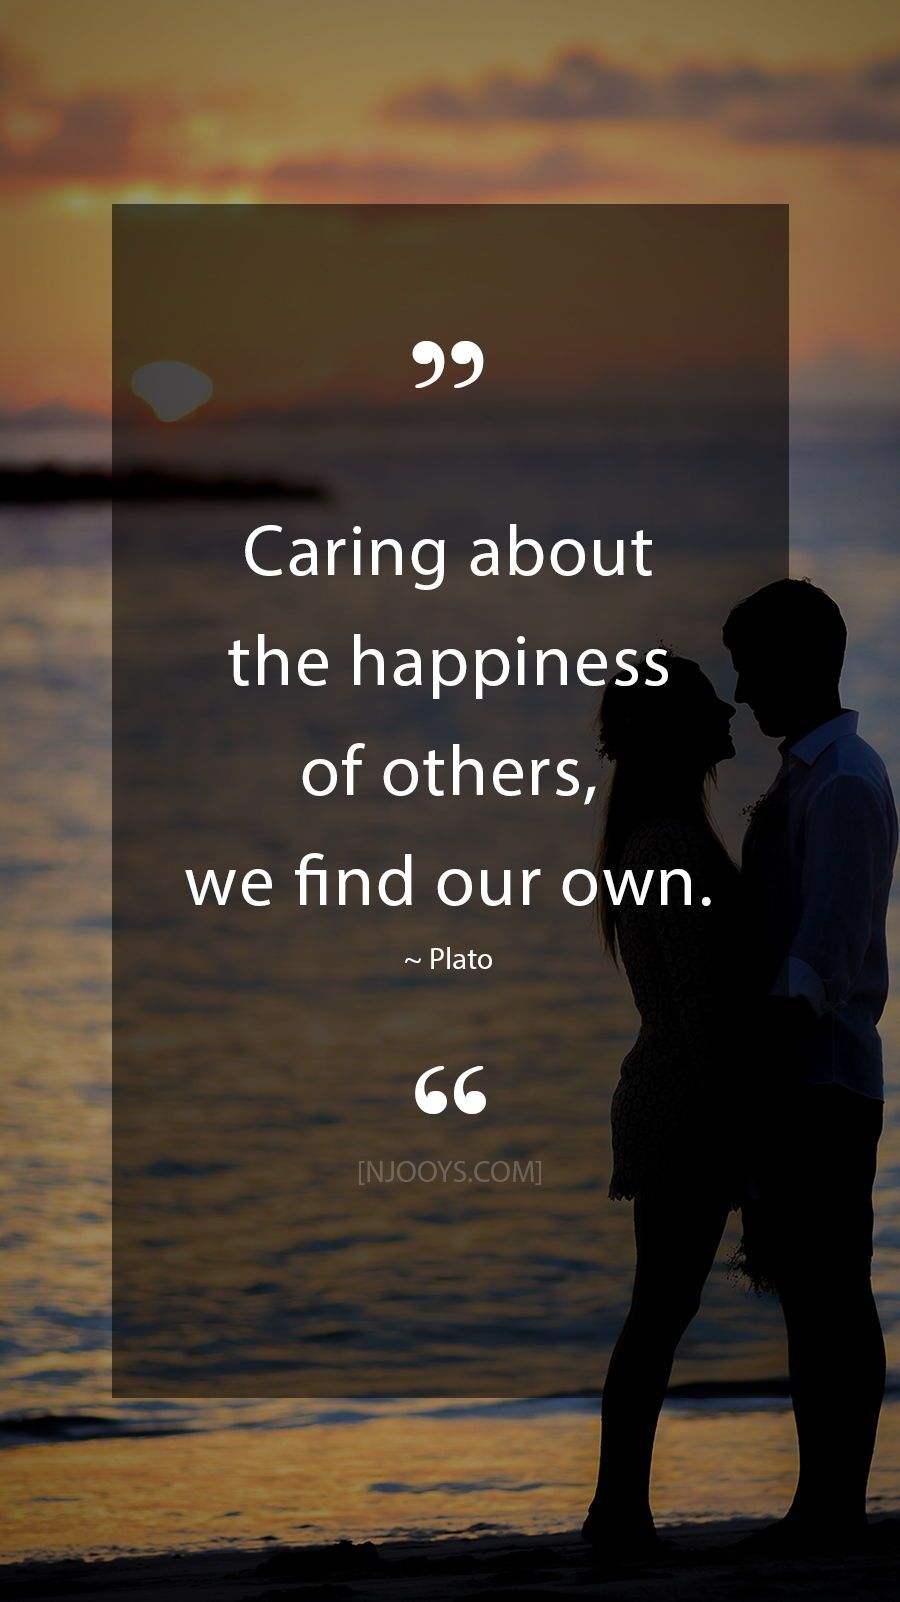 Plato Quotes Caring About The Happiness Of Others We Find Our Own Plato Quote Evolve Your Mindset With Inspirational Motivational Quotes Pure Encouragem